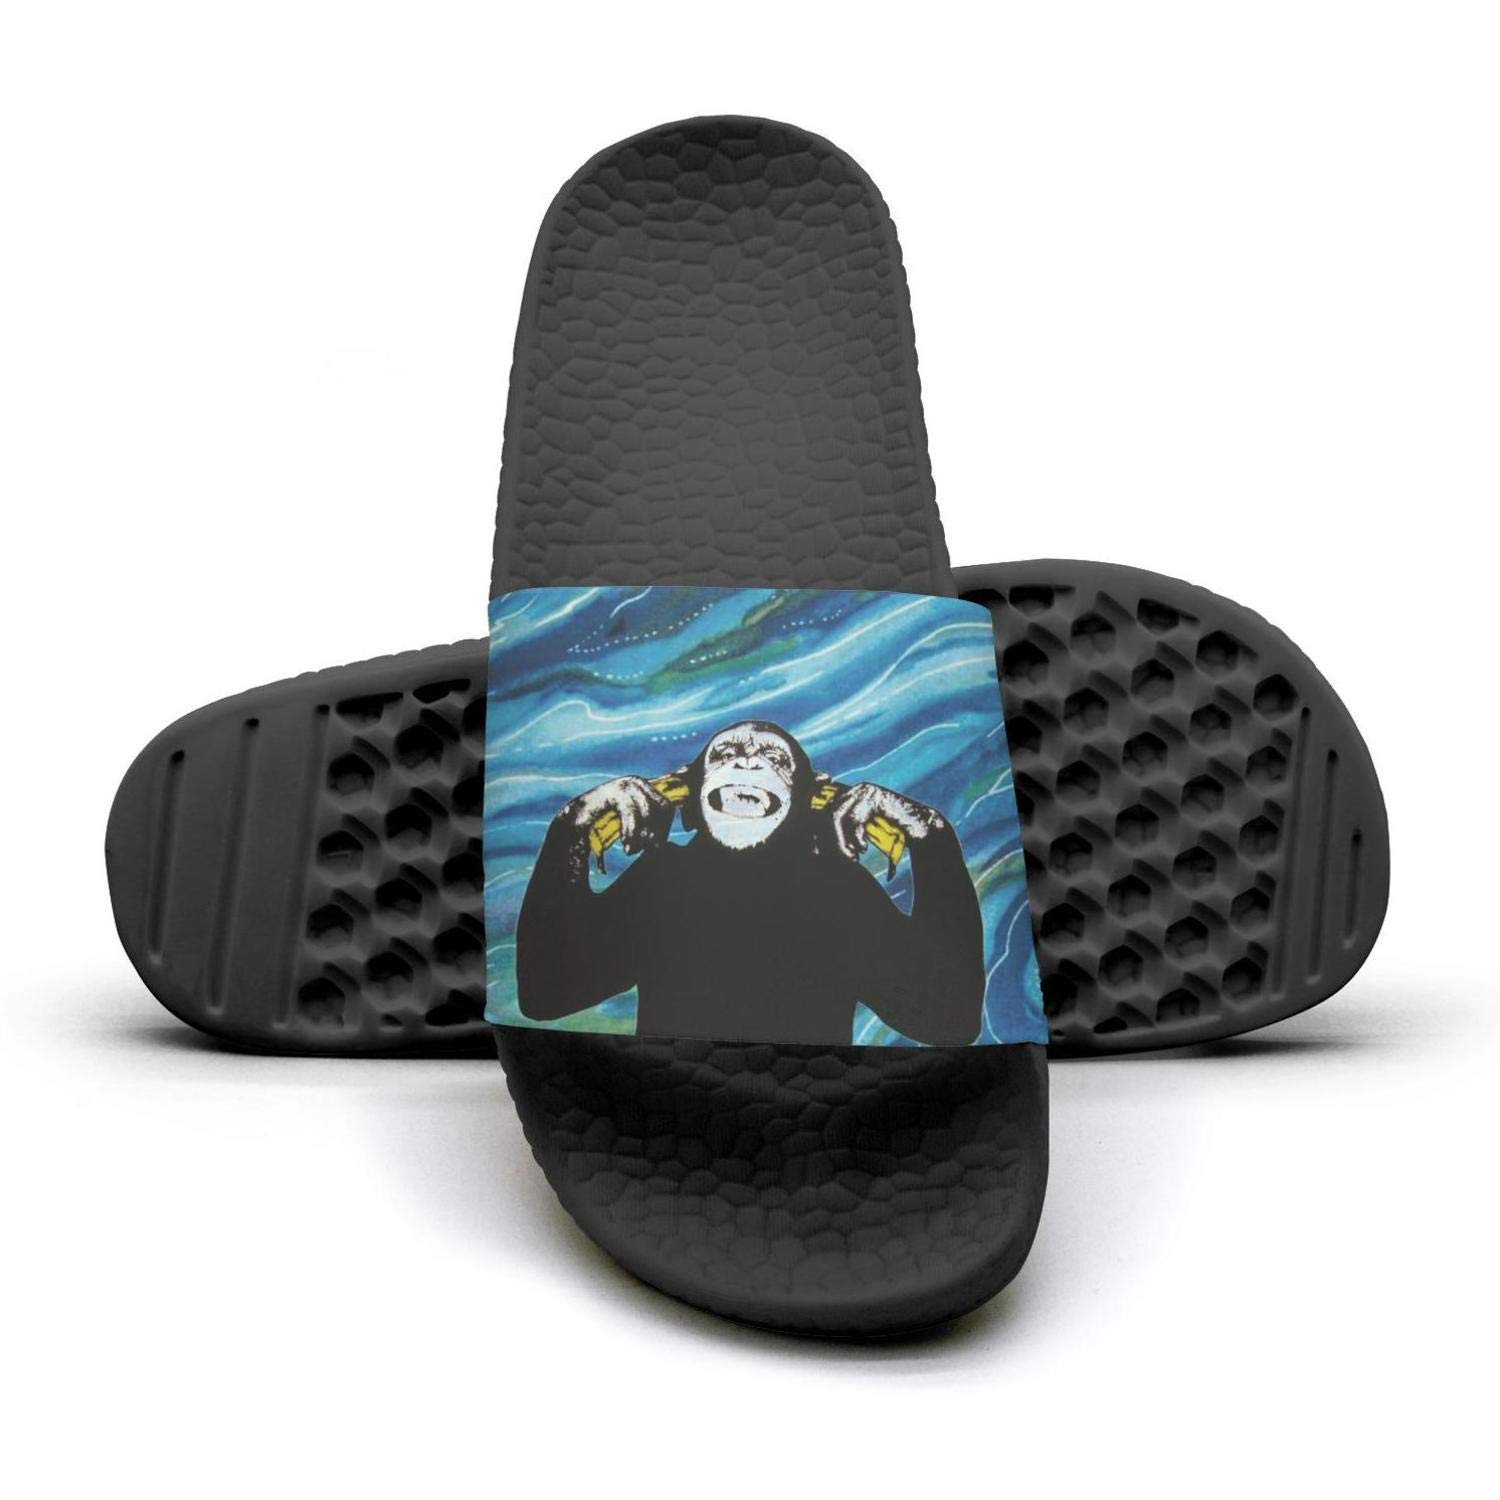 black monkey holds banana with smile Slippers Sandals Slippers for Men by AKDJDS